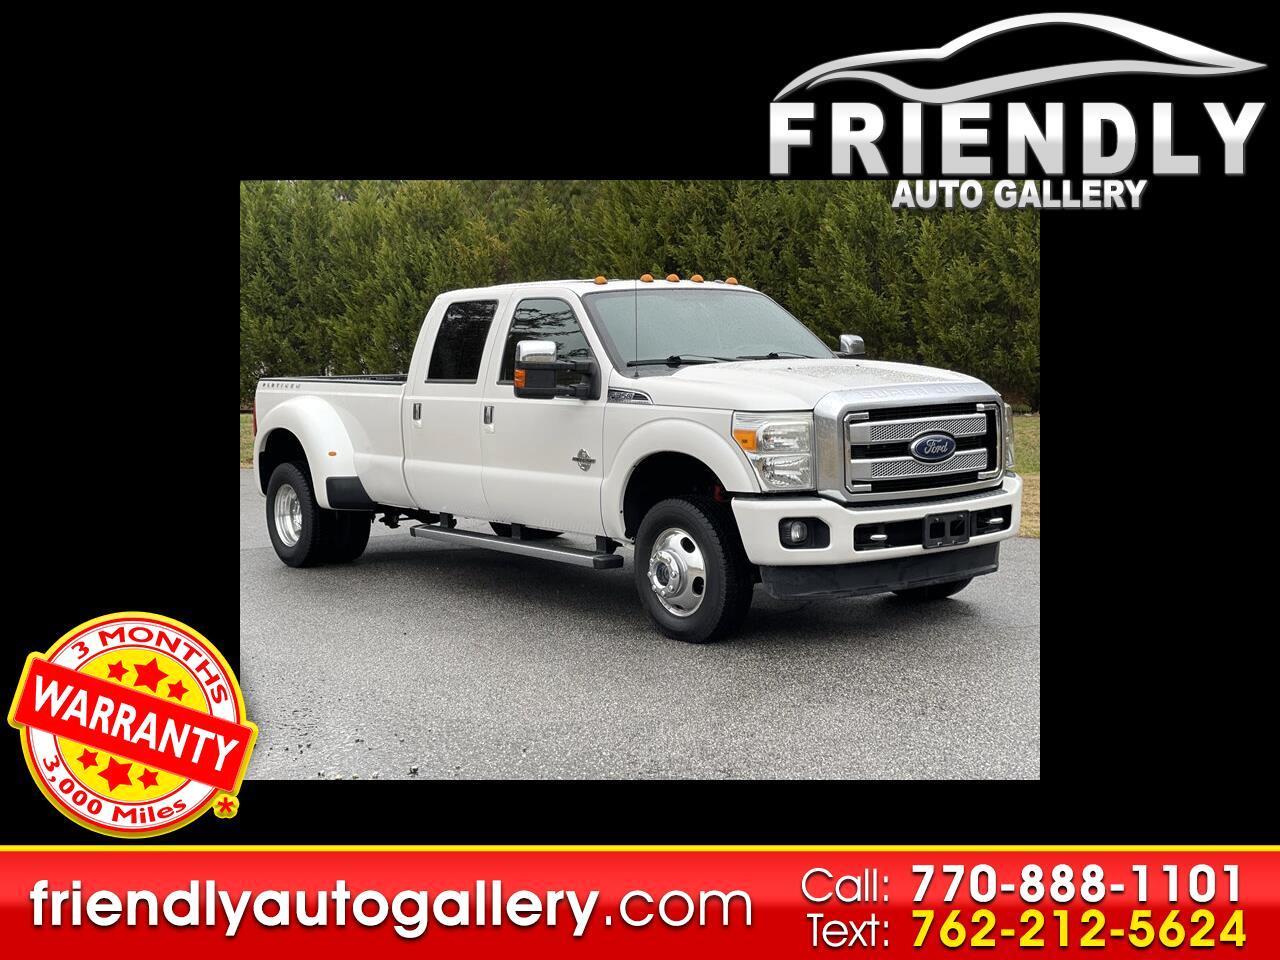 Used 2015 Ford Super Duty F-350 DRW Platinum Pickup 4D 6 3/4 ft for Sale in  Cumming GA 30040 Friendly Auto Gallery | 2015 Ford F350 Super Duty Truck Uper Wiring Harness |  | Friendly Auto Gallery